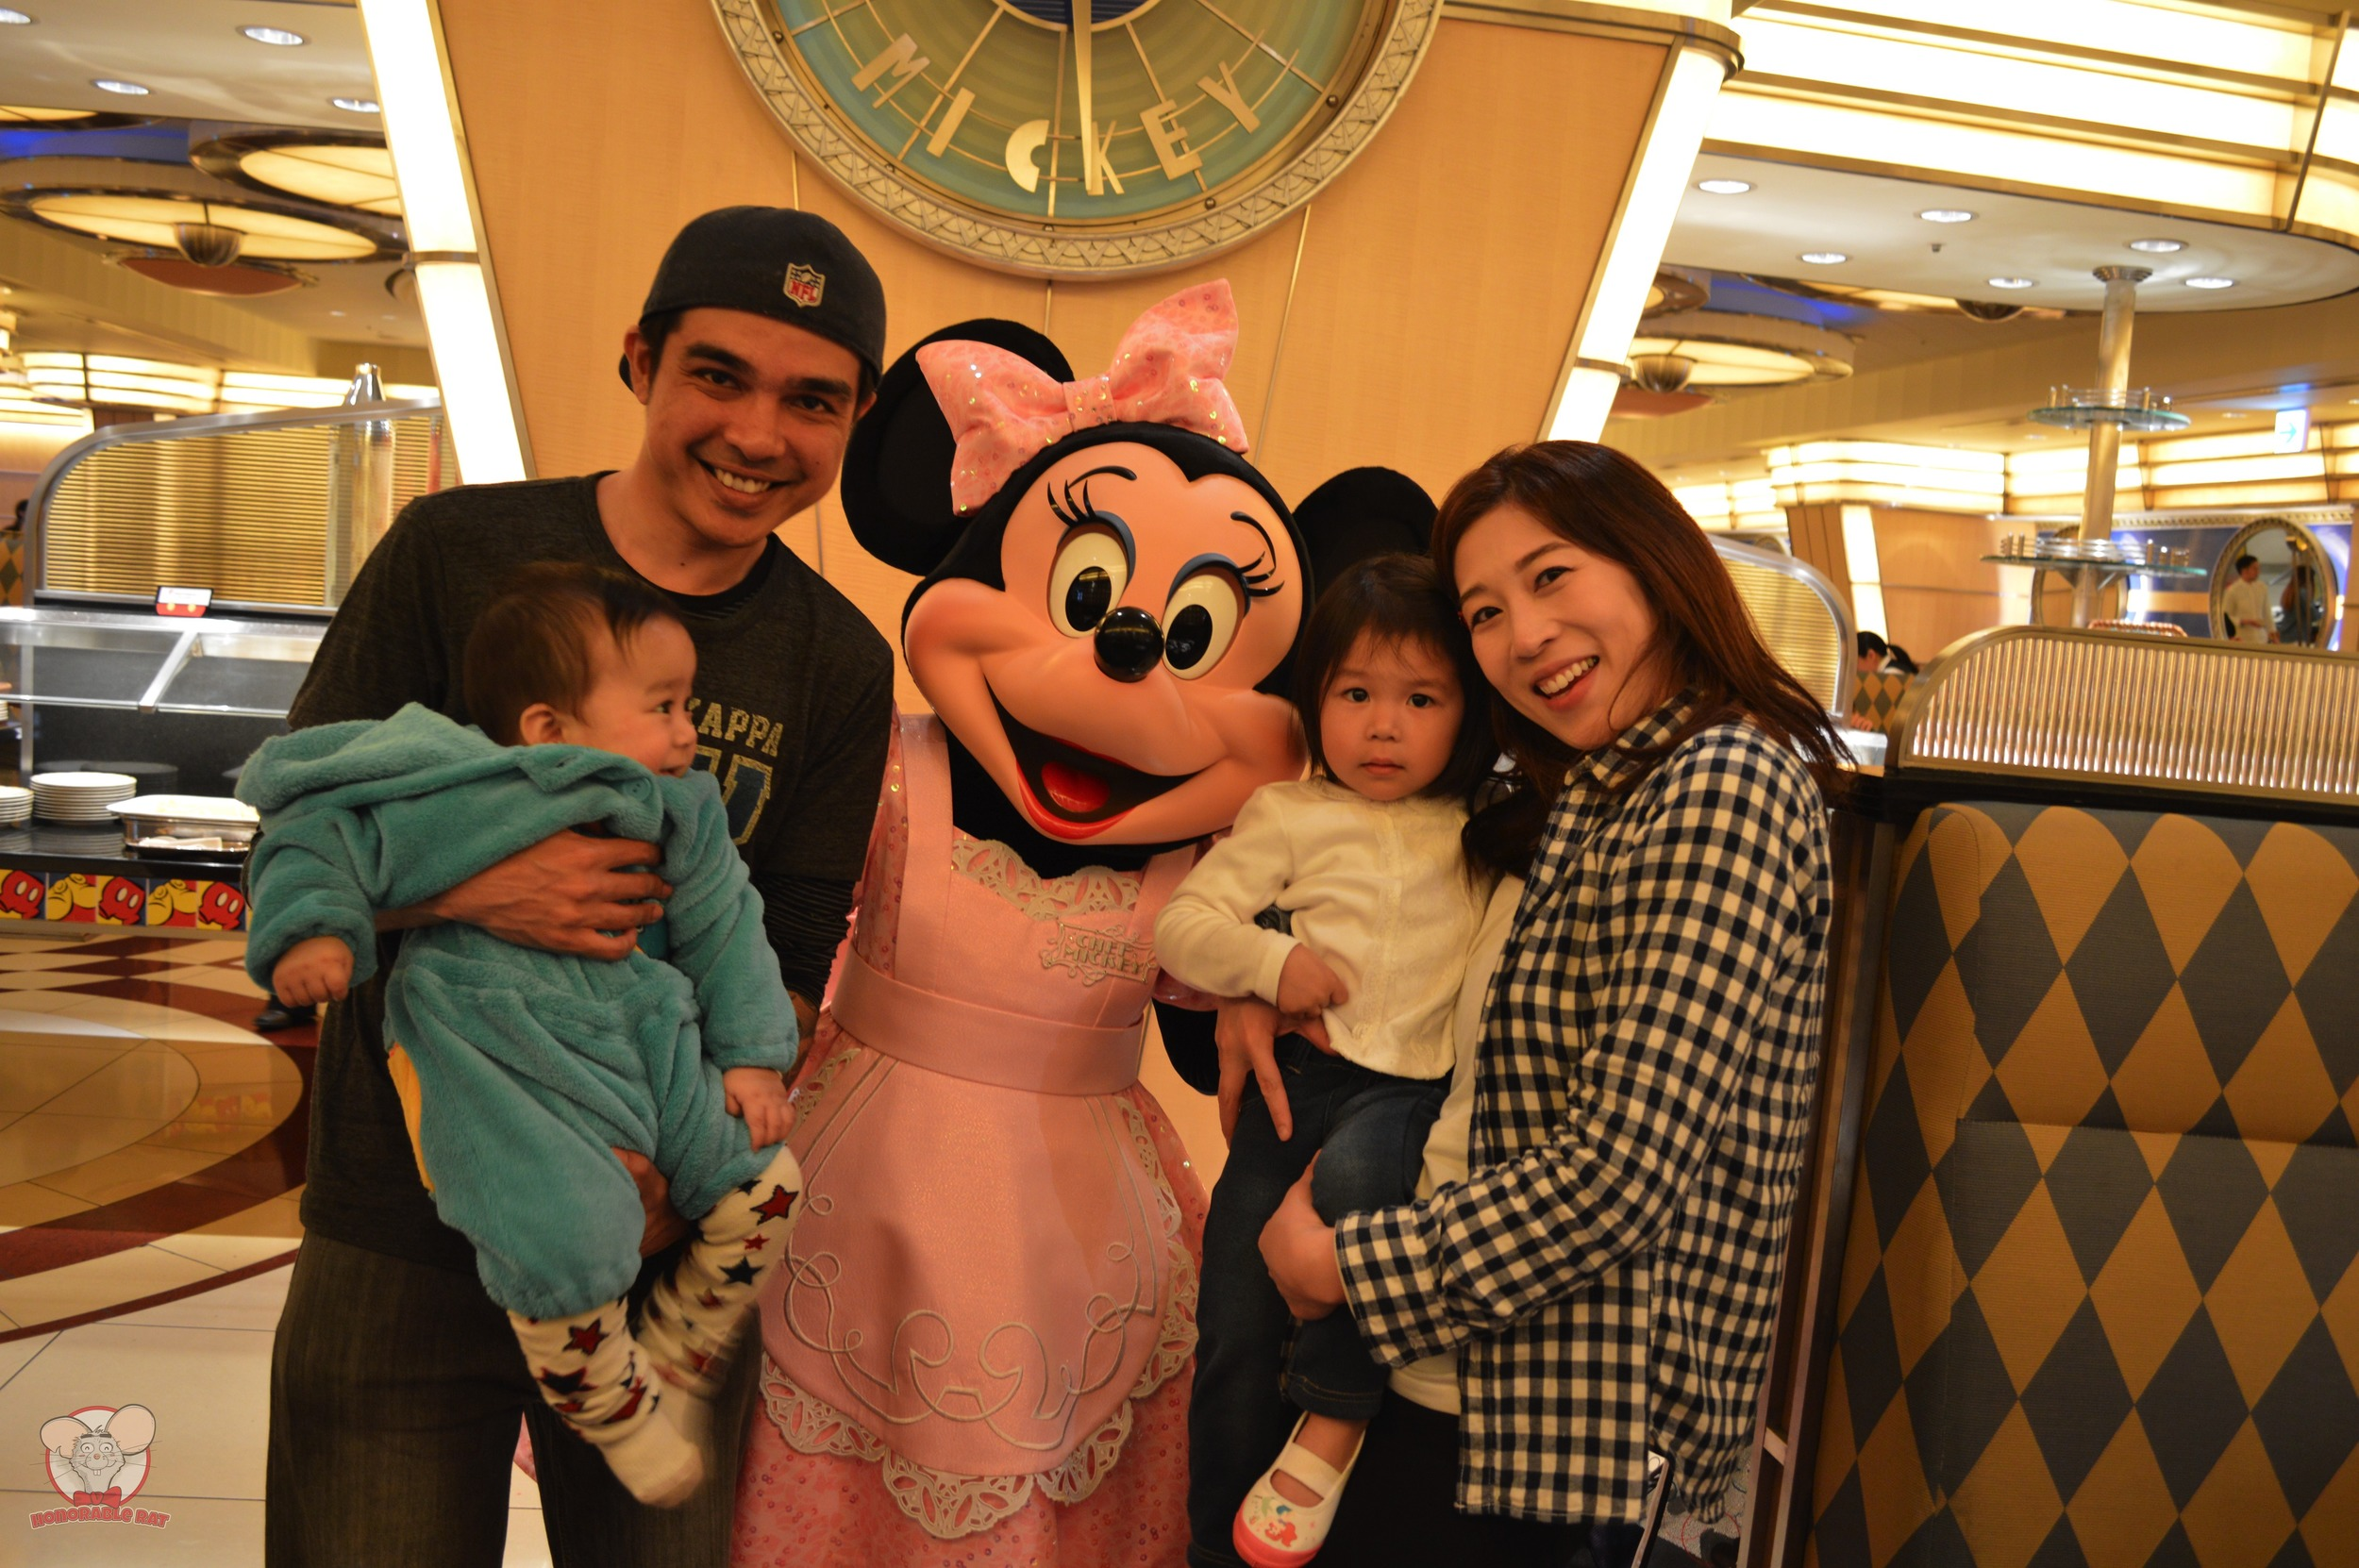 The Kaneko Shahs with Minnie Mouse